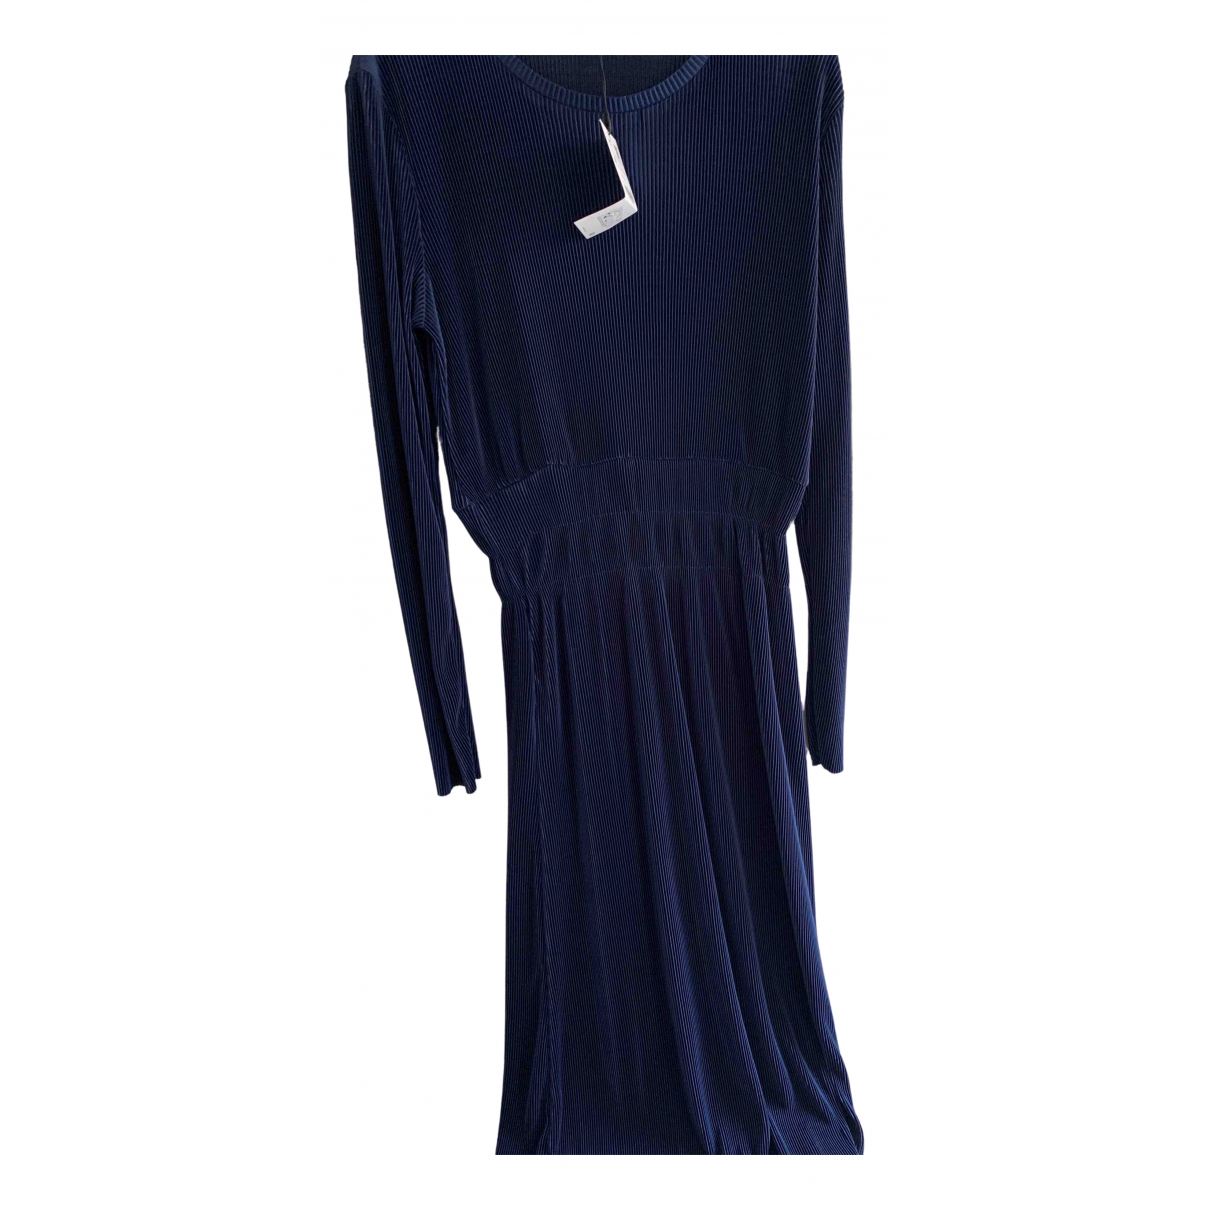 Zara \N Blue dress for Women 12 UK